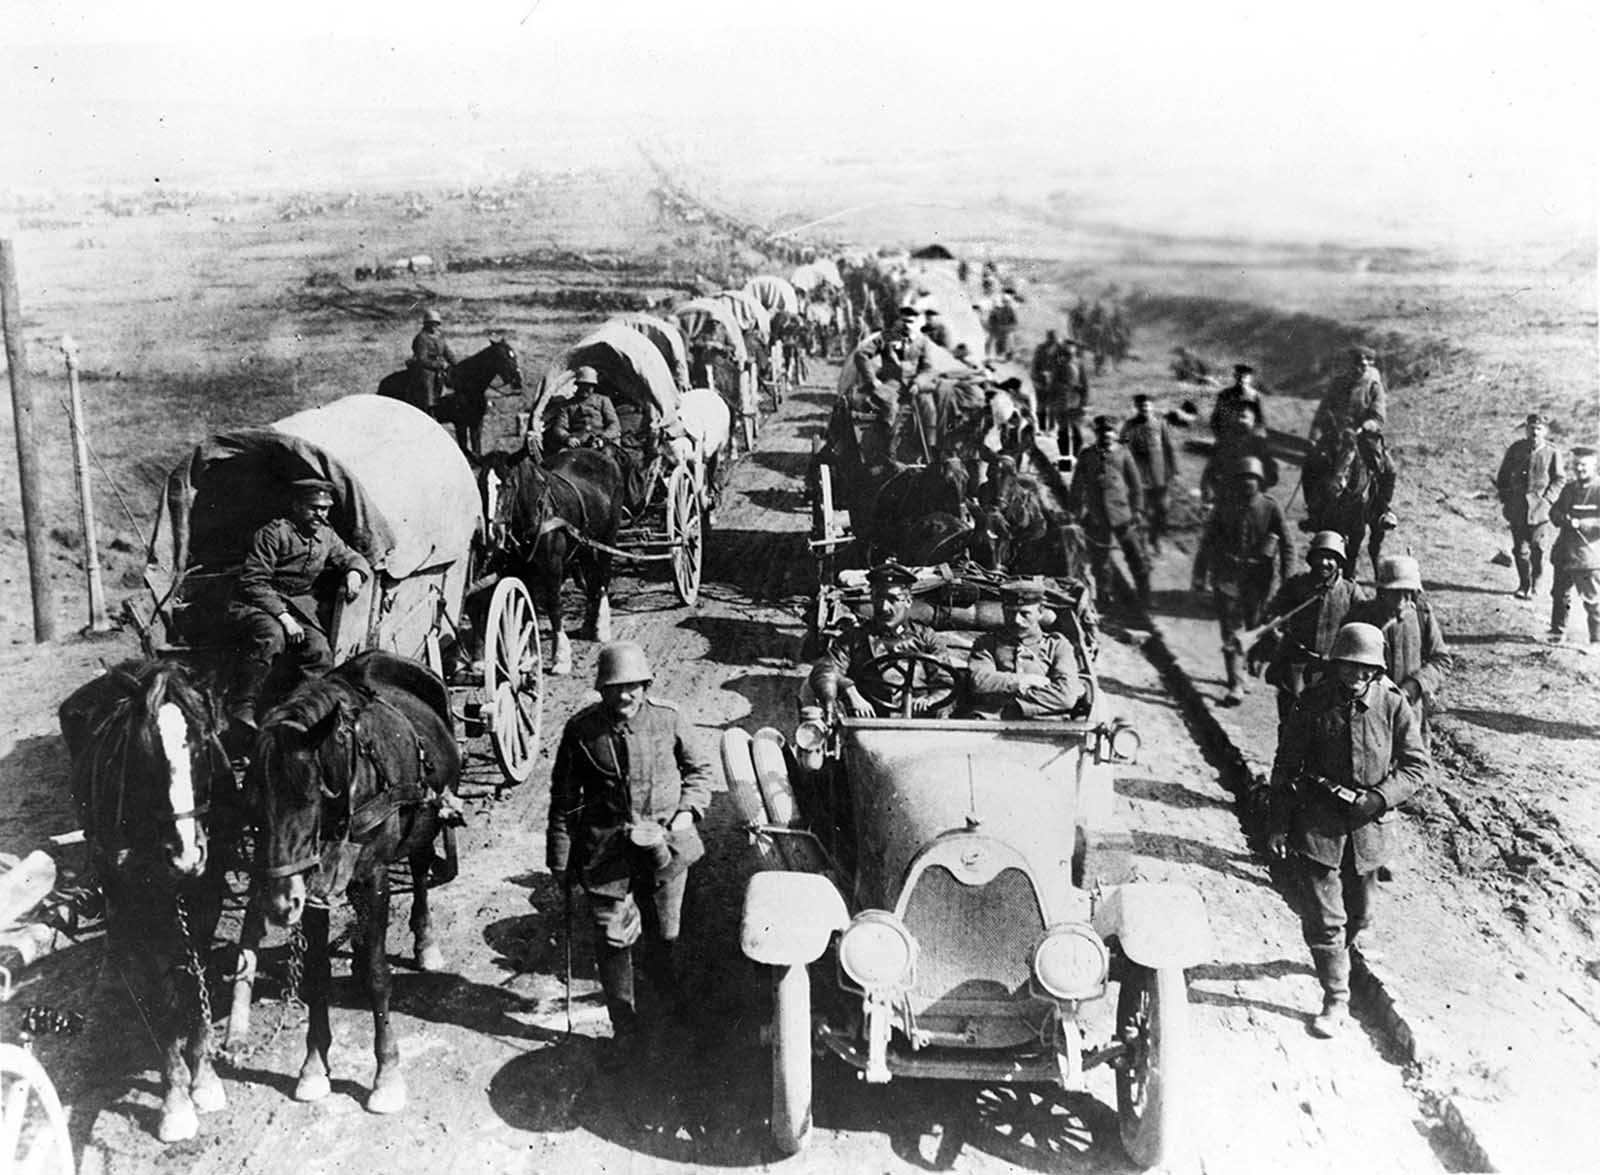 German officers in an automobile on the road with a convoy of wagons; soldiers walk along side the road.